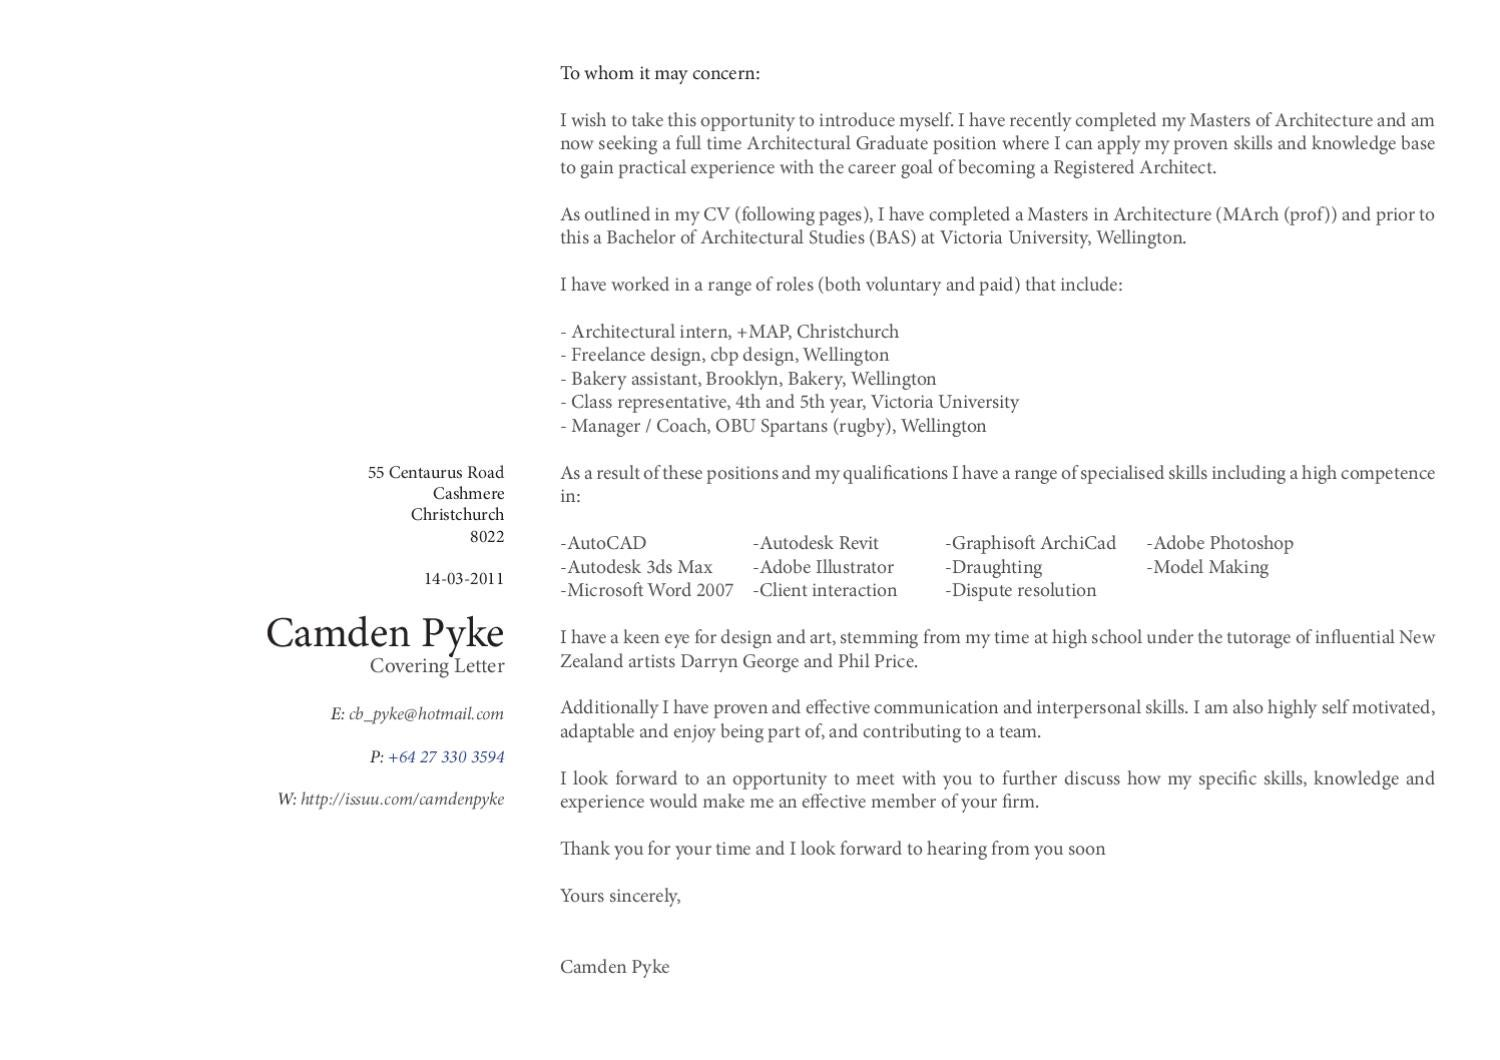 Cover Letter And CV By Cam Pyke   Issuu